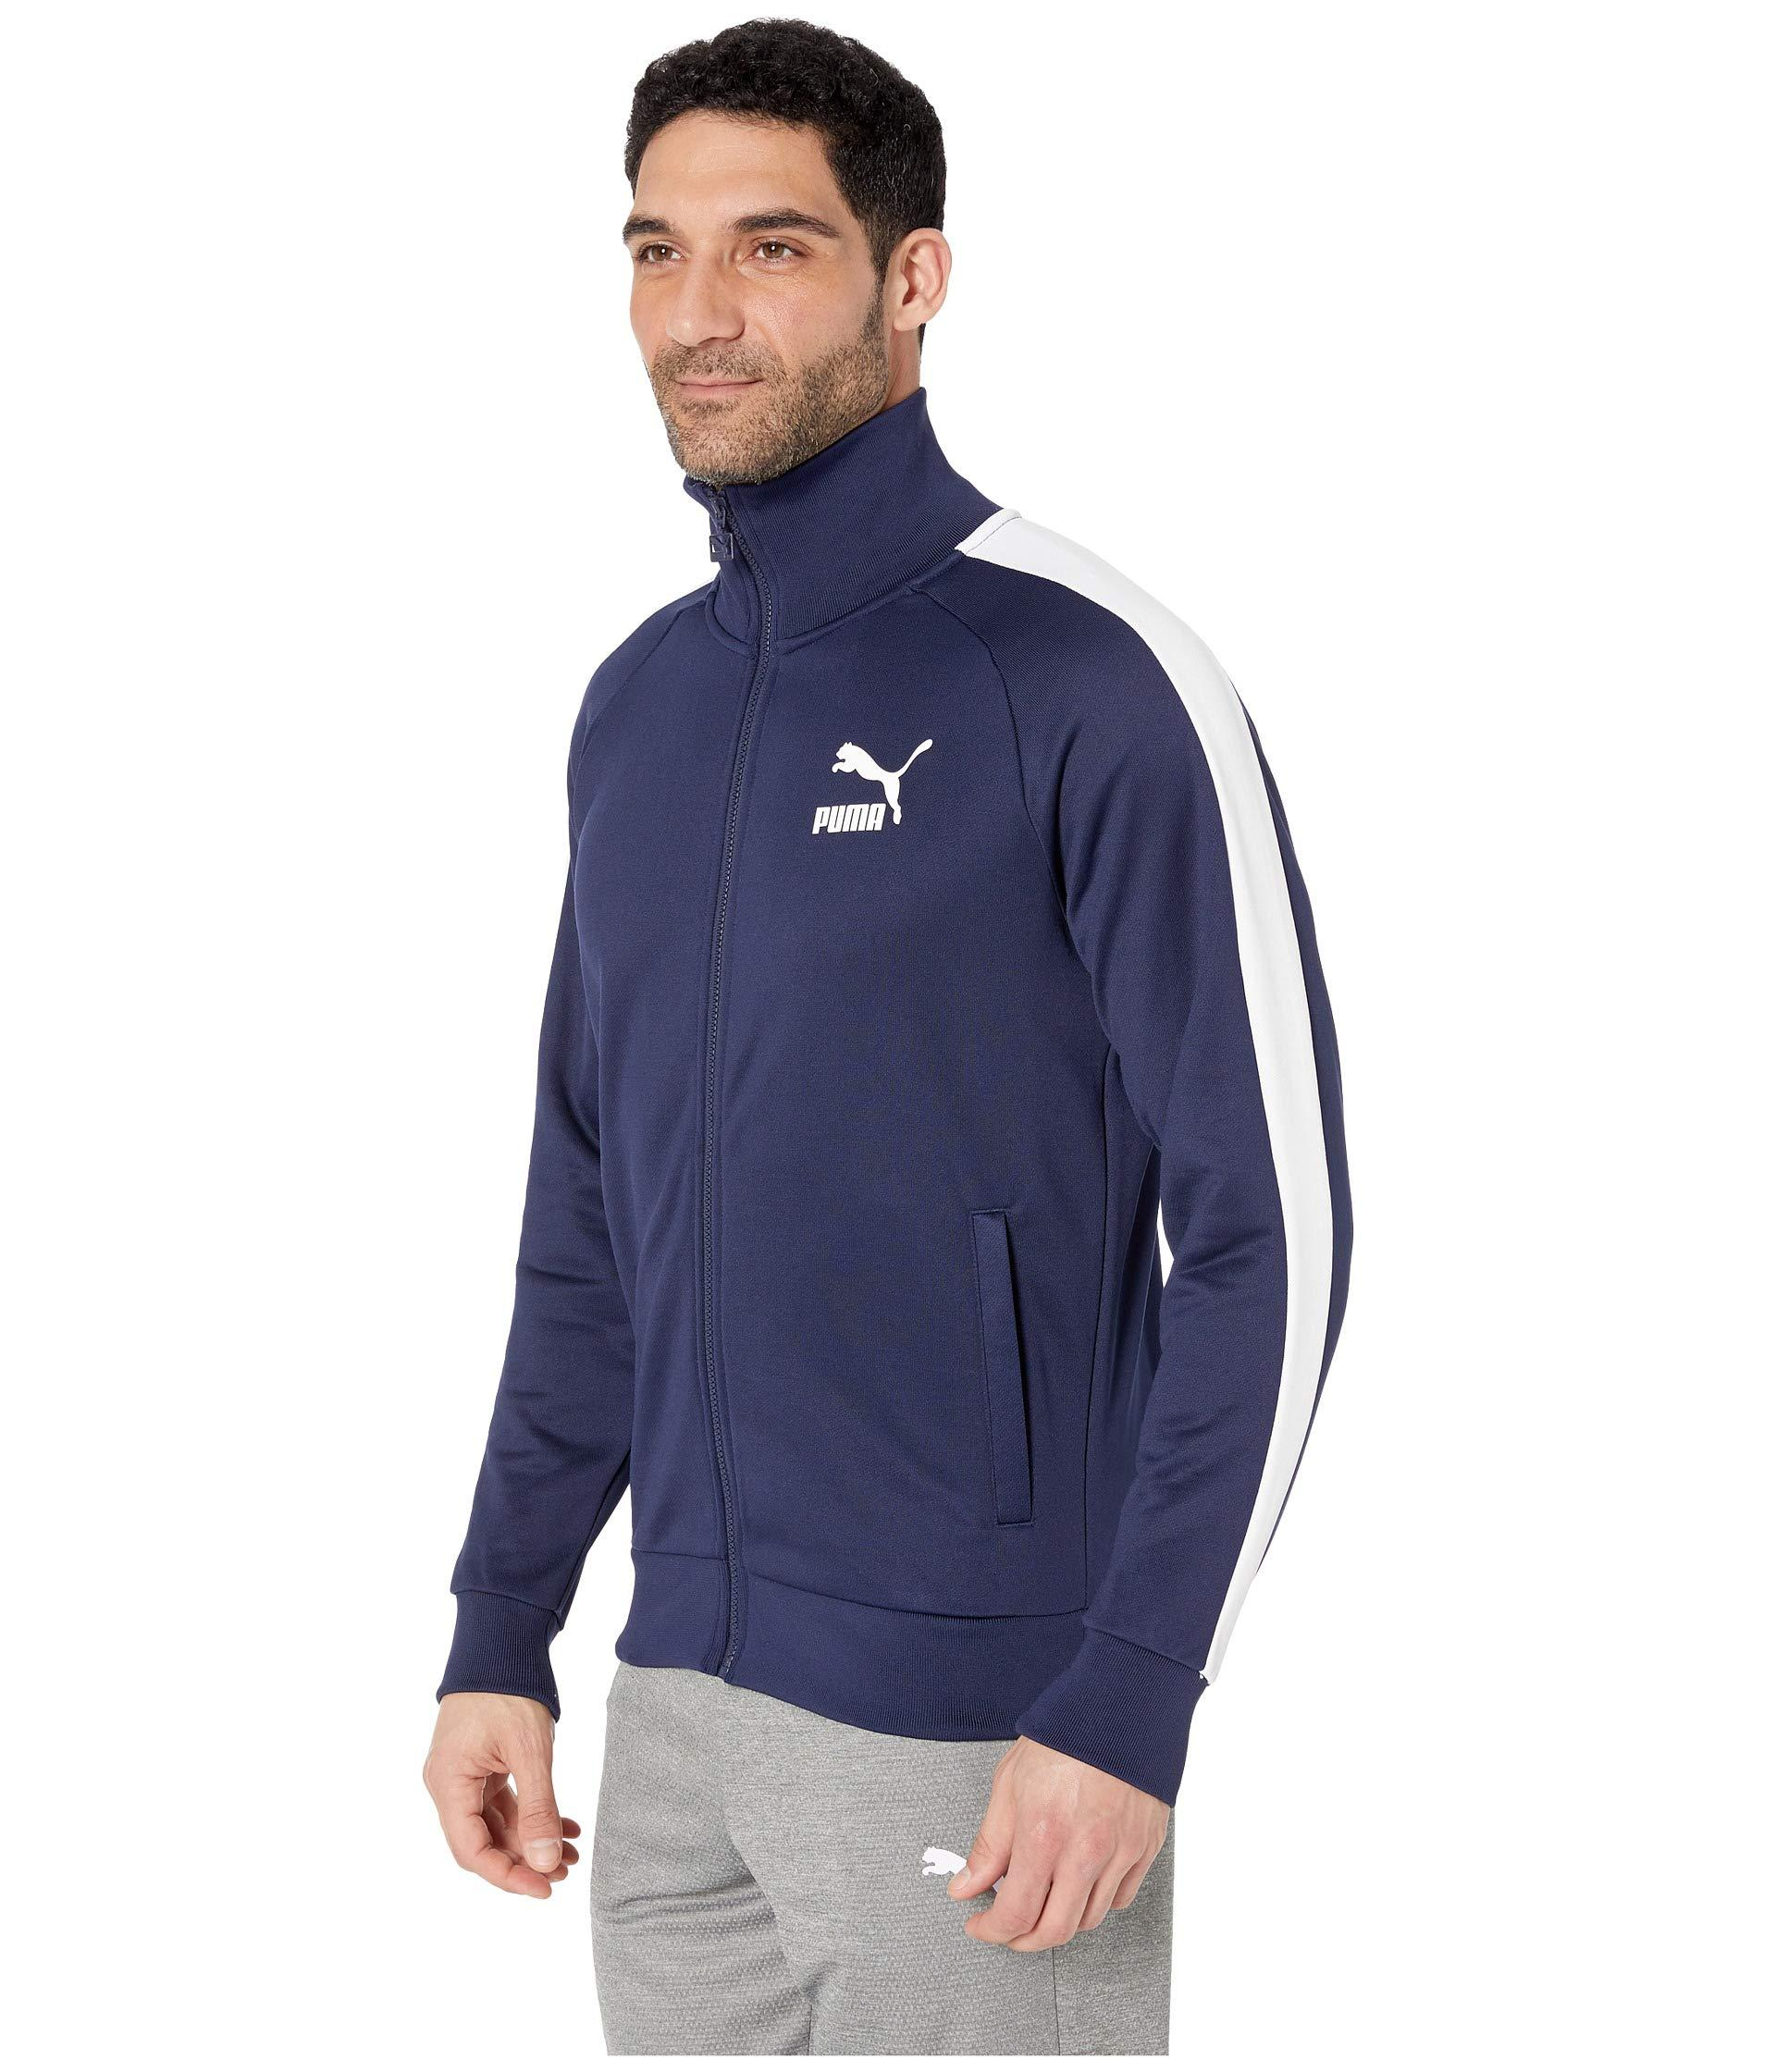 f30f2198f427 Lyst - PUMA Iconic T7 Track Jacket in Blue for Men